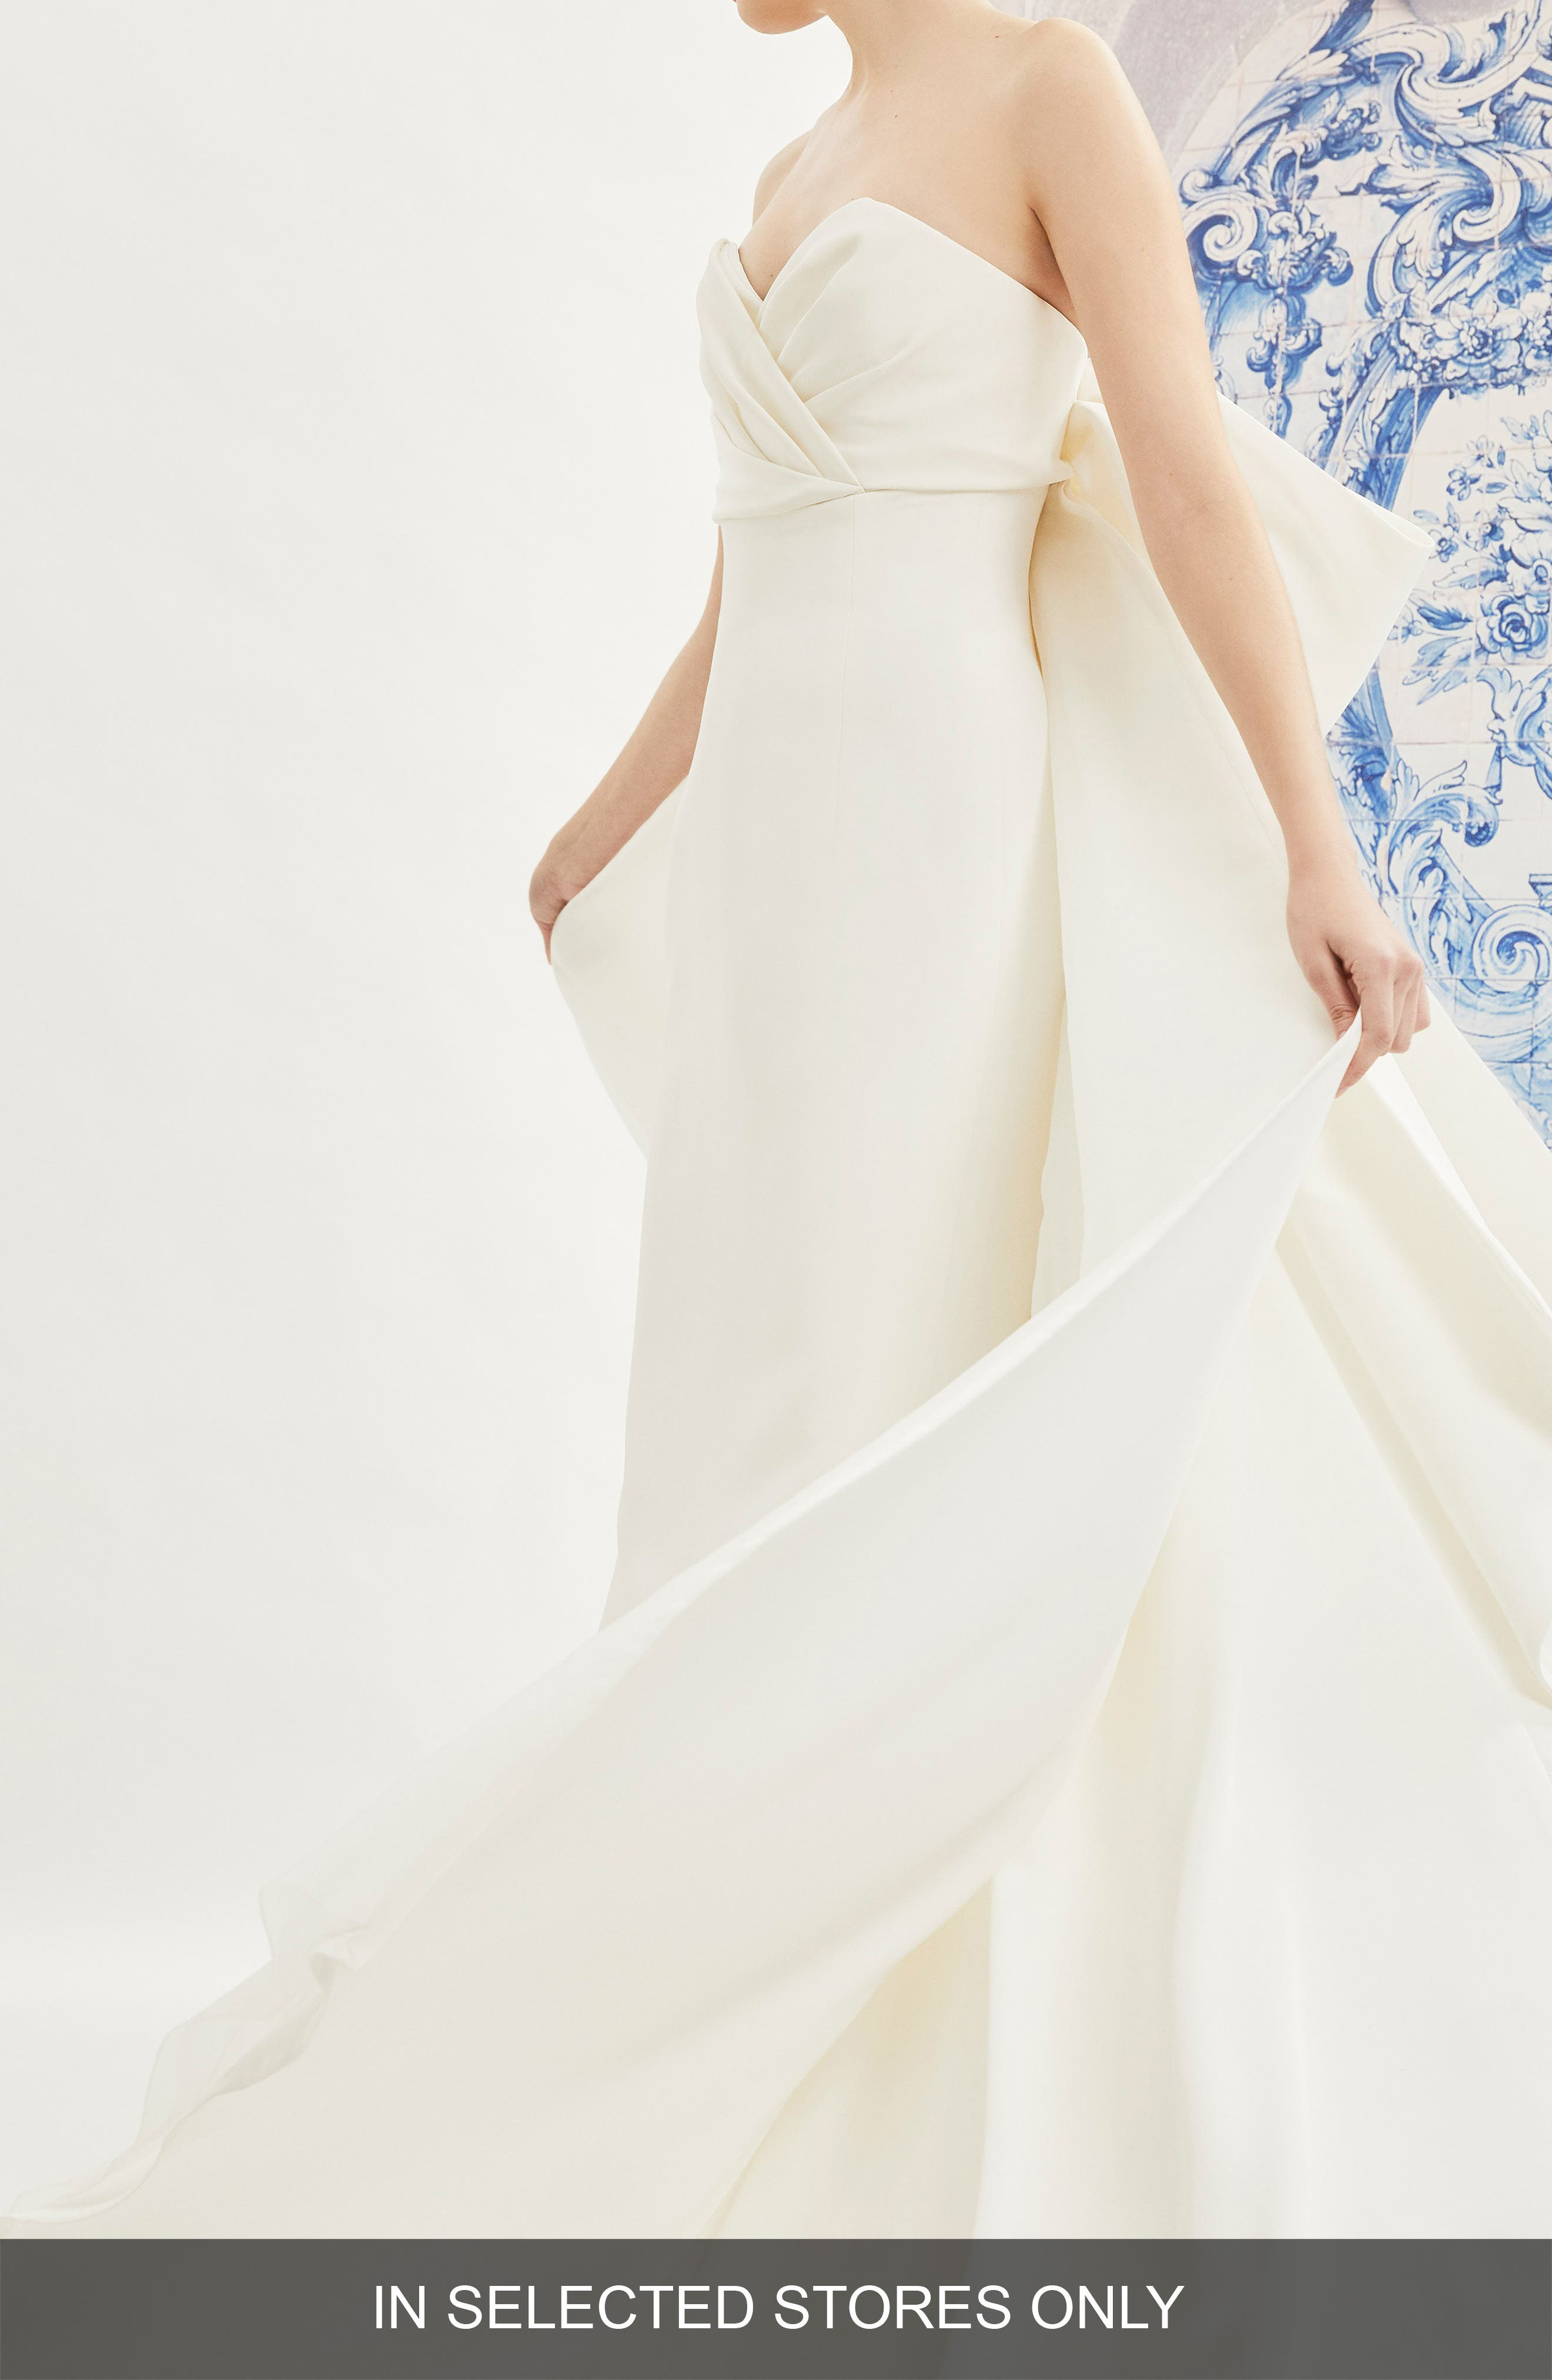 Indira Bow Back Detail Strapless Wedding Dress in Ivory